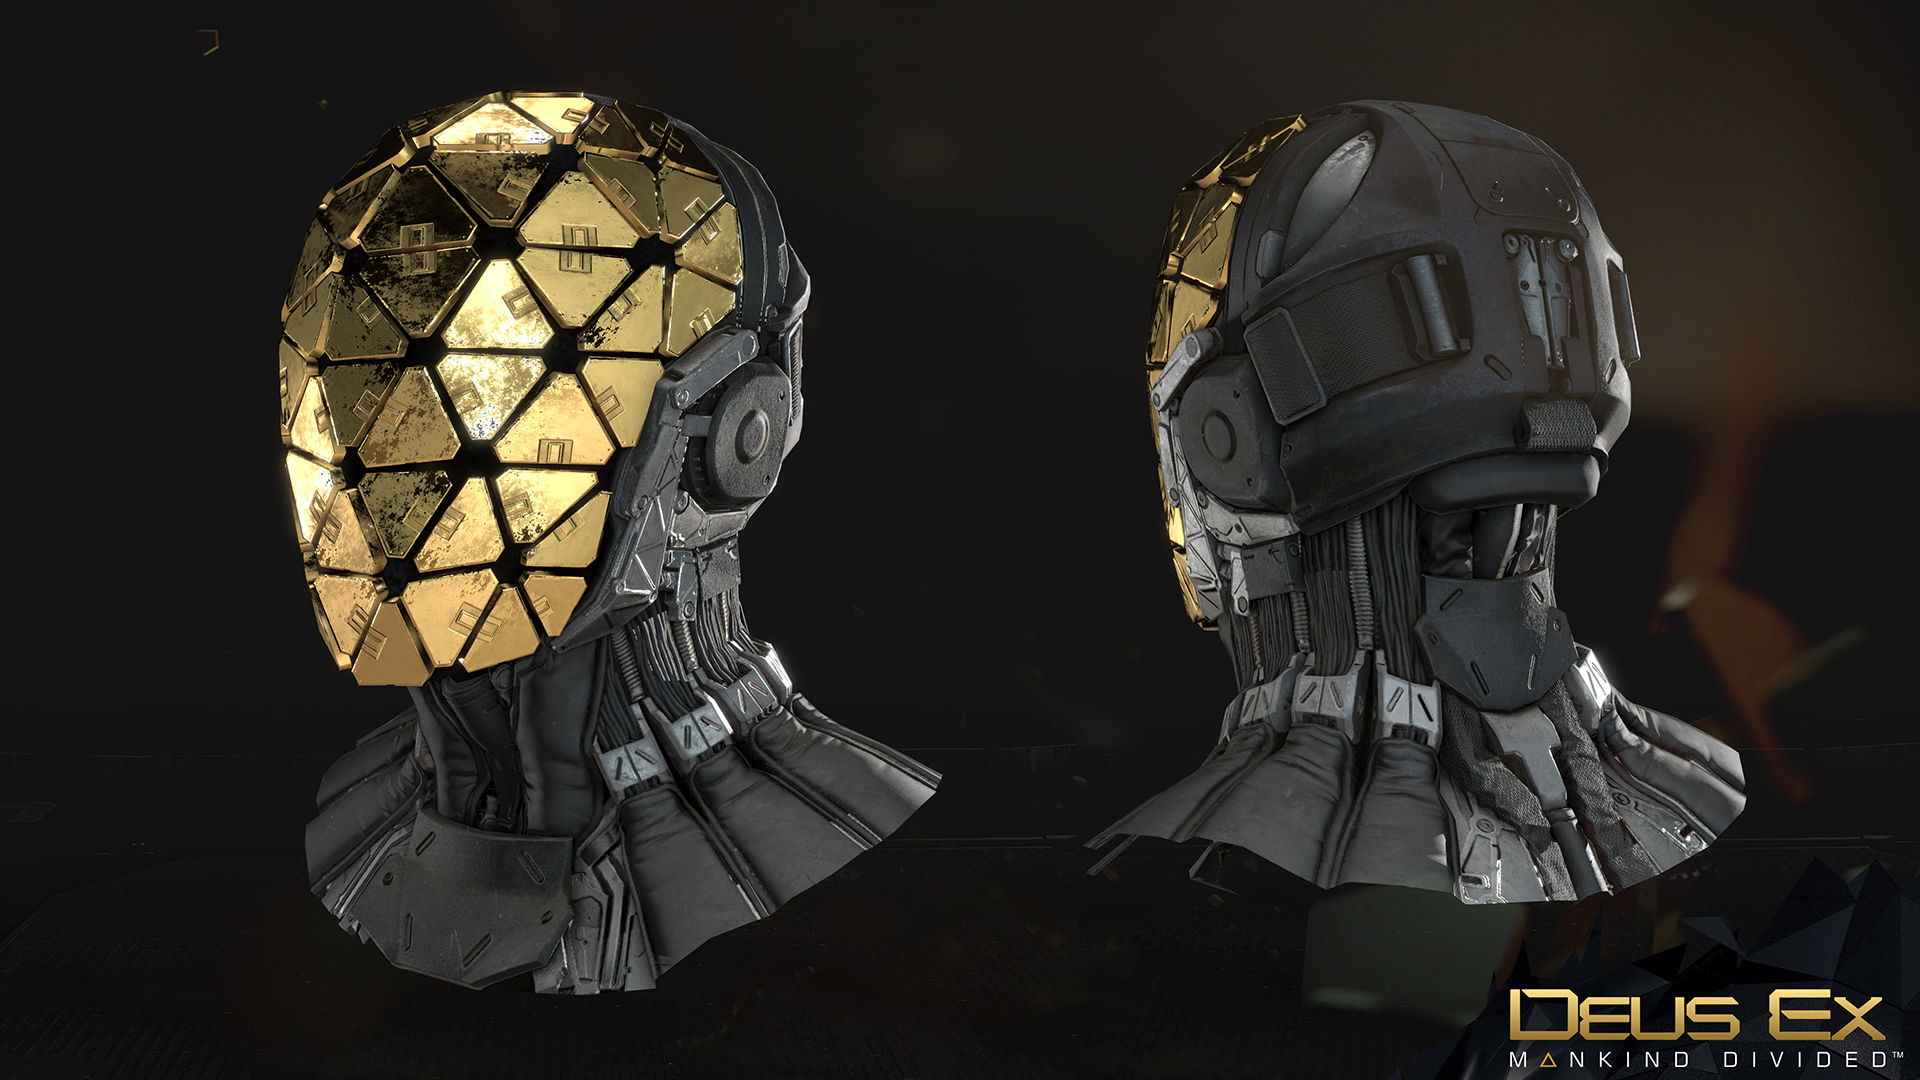 Awesome Instances Of Hard Surface Modeling Around Cgsociety Article Cgsociety